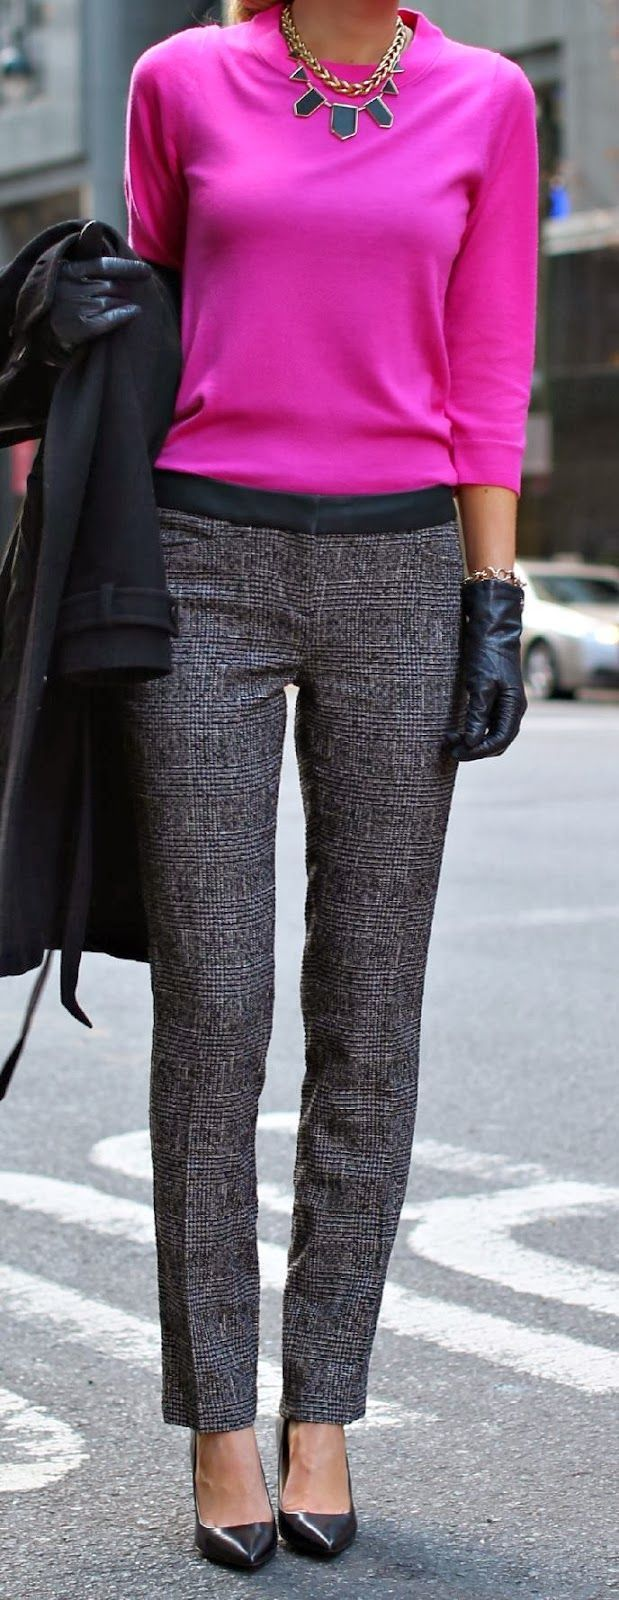 Love the pants, not sure about the color of the top. LUV the gloves and will need for winter!!!